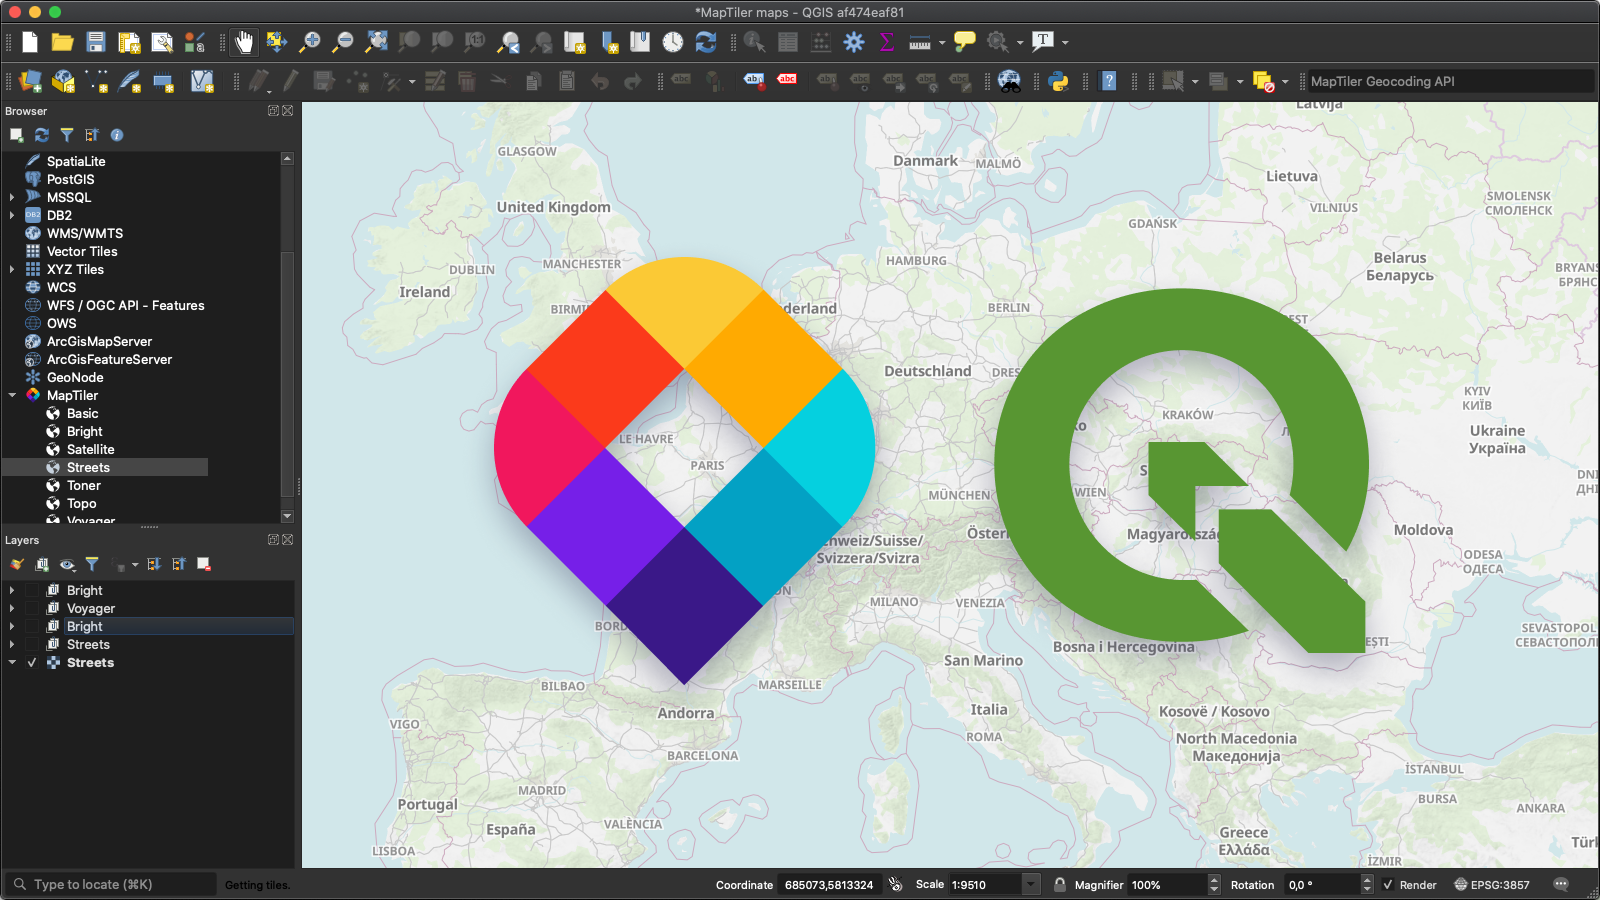 Say hello to the new QGIS plugin image